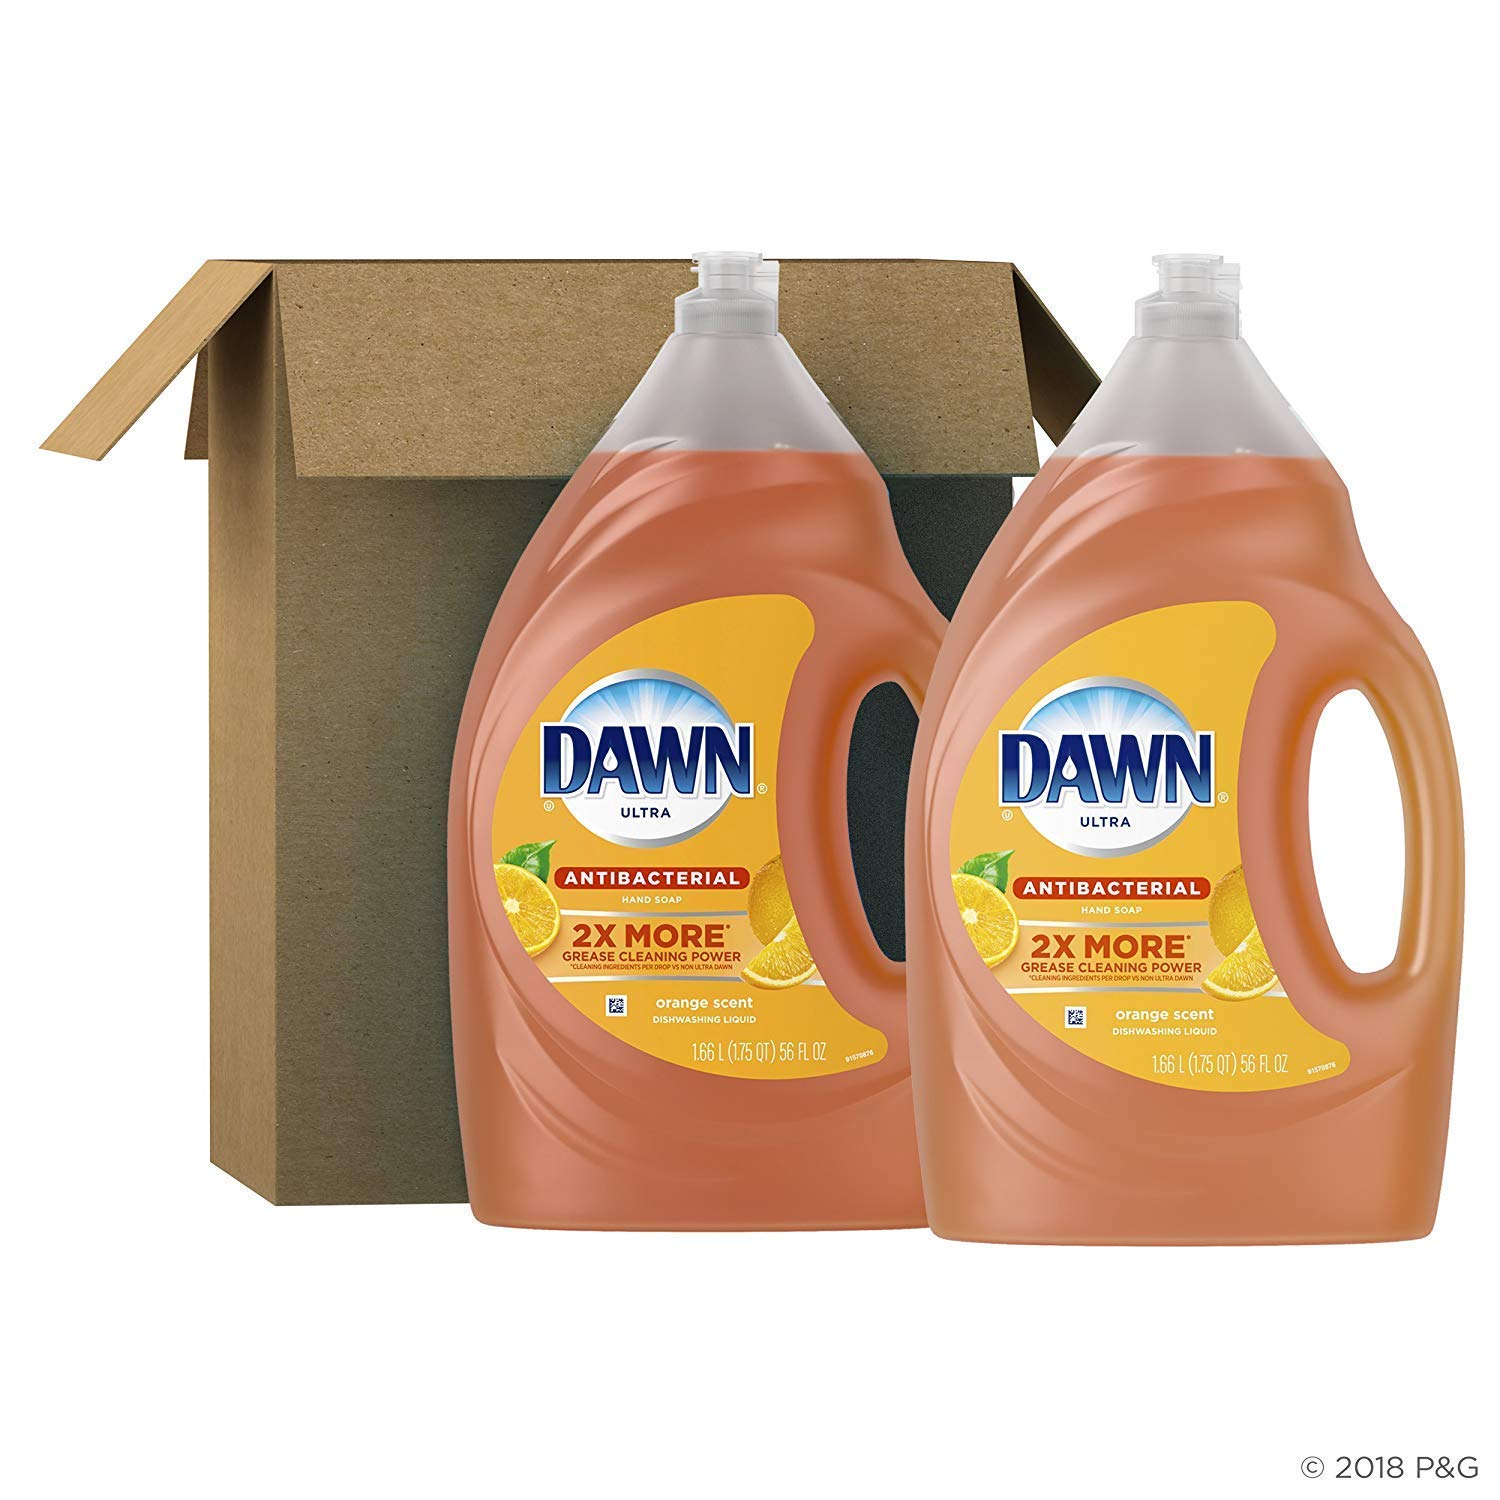 Dawn Antibacterial Dishwashing Liquid Dish Soap, Orange Scent, 56 Fl Oz,Pack of 2(Packaging May Vary) (3-Pack